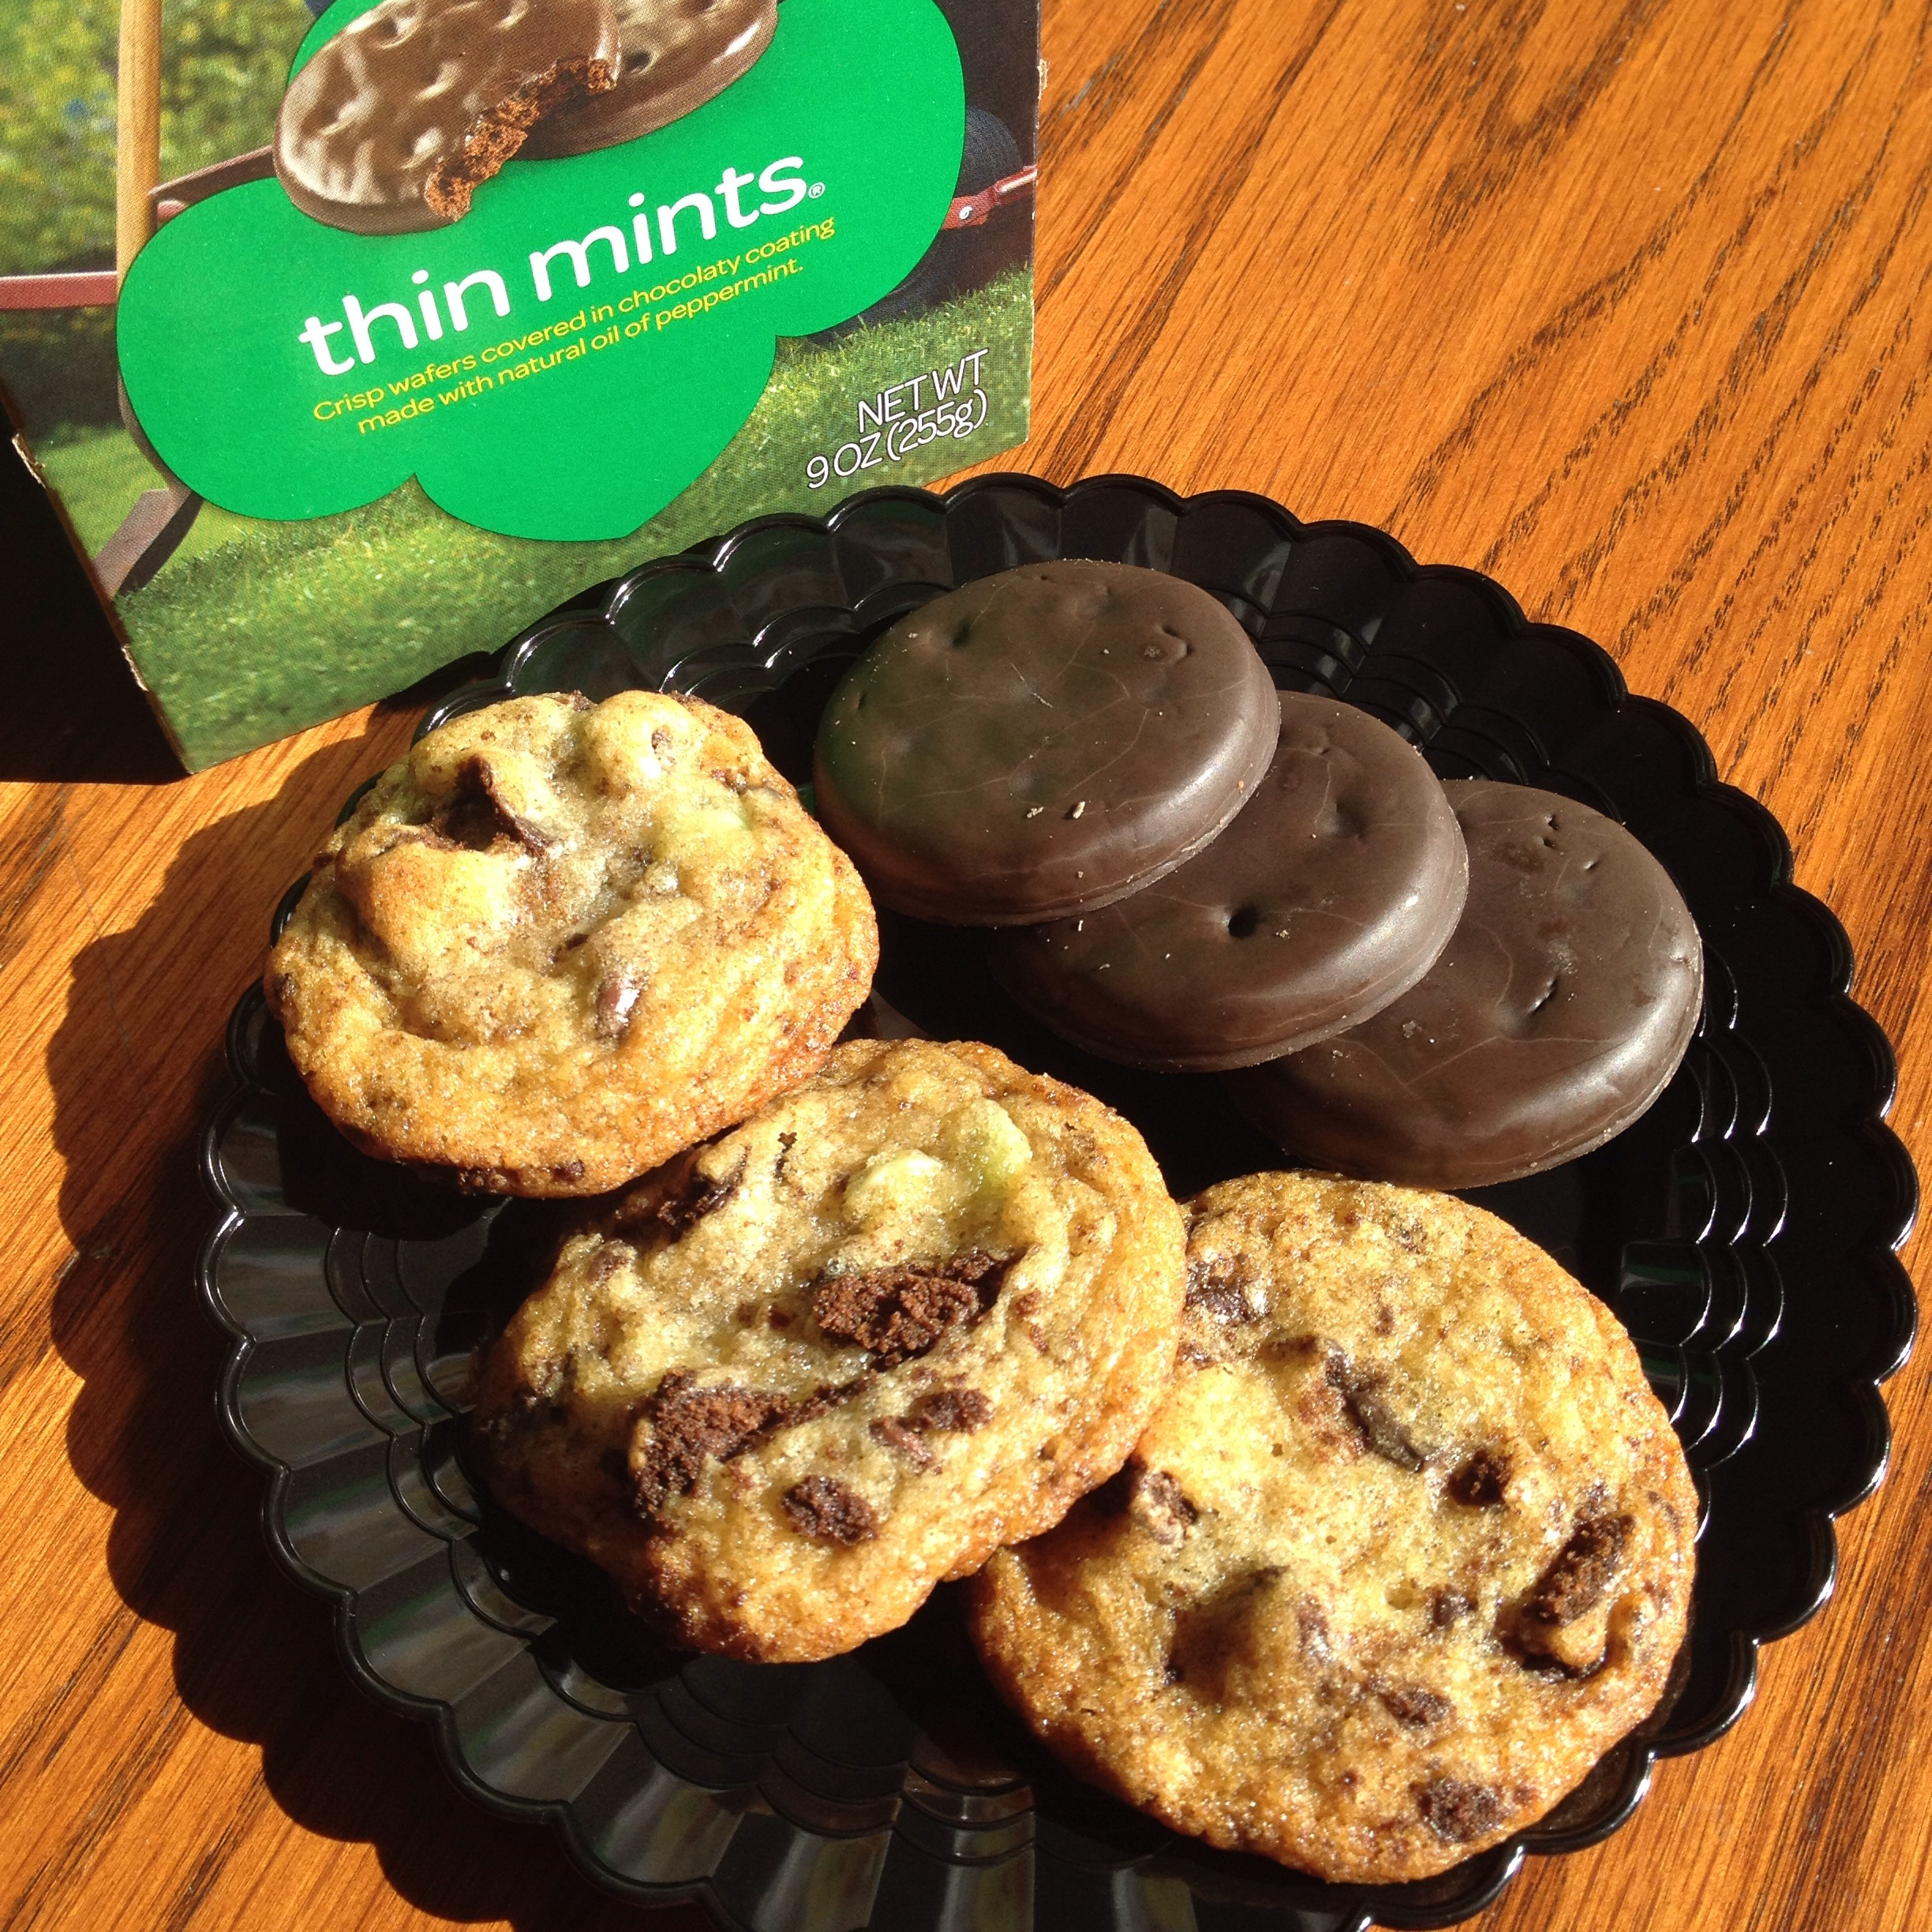 Girl Scout Thin Mint Chocolate Chip Cookies. Recipe at cinenoms.wordpress.com.